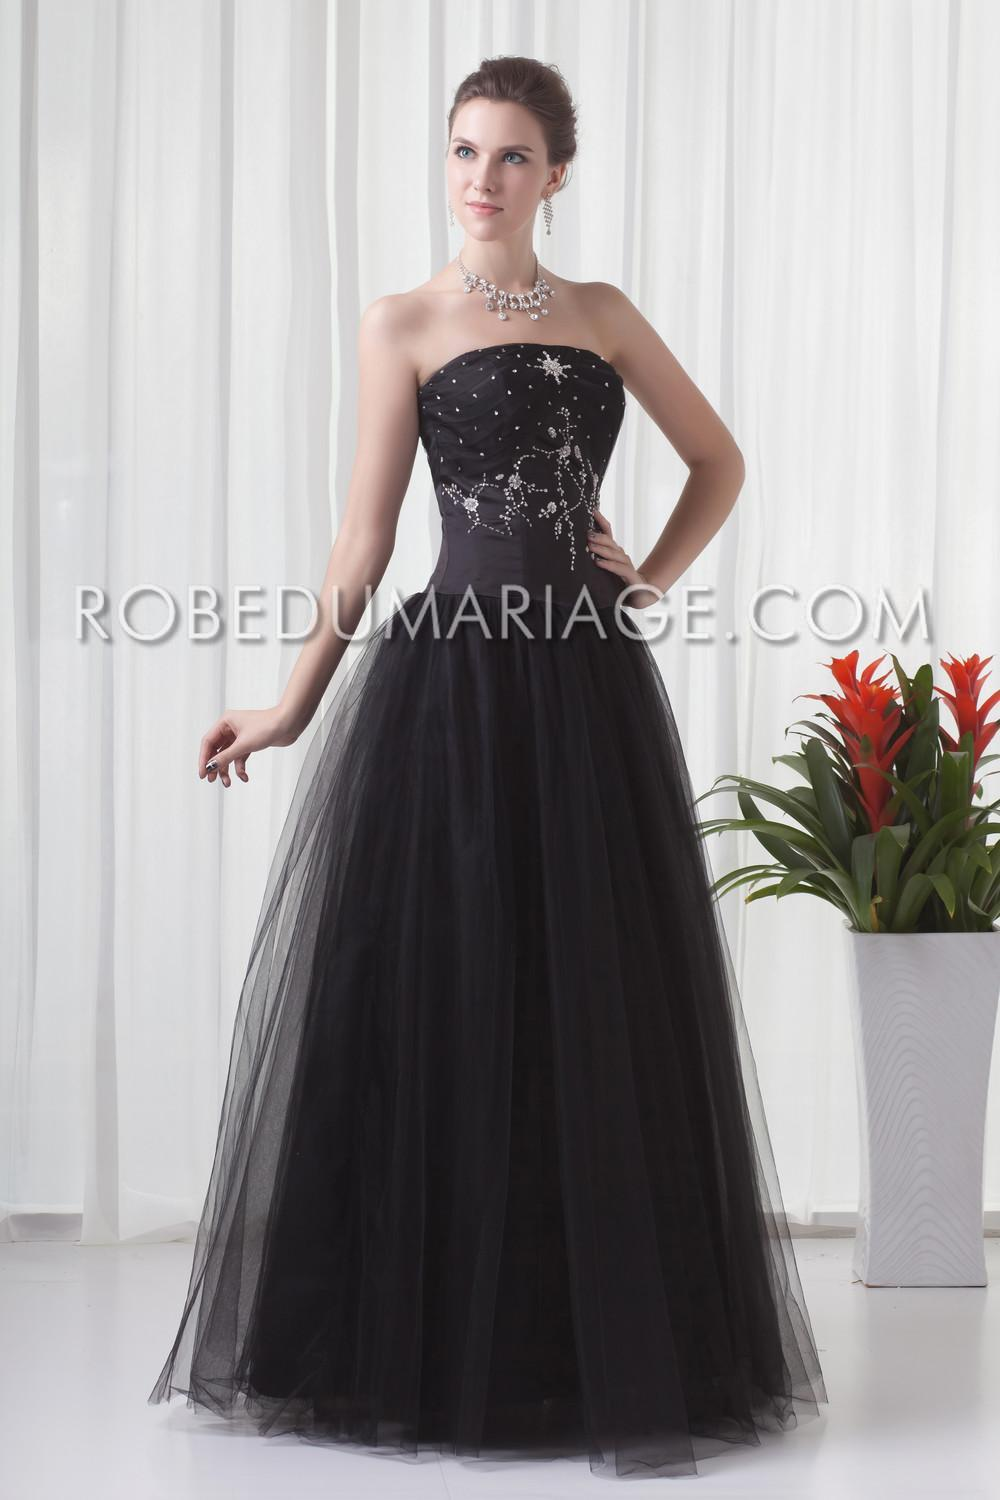 robe soiree pas cher pour mariage. Black Bedroom Furniture Sets. Home Design Ideas